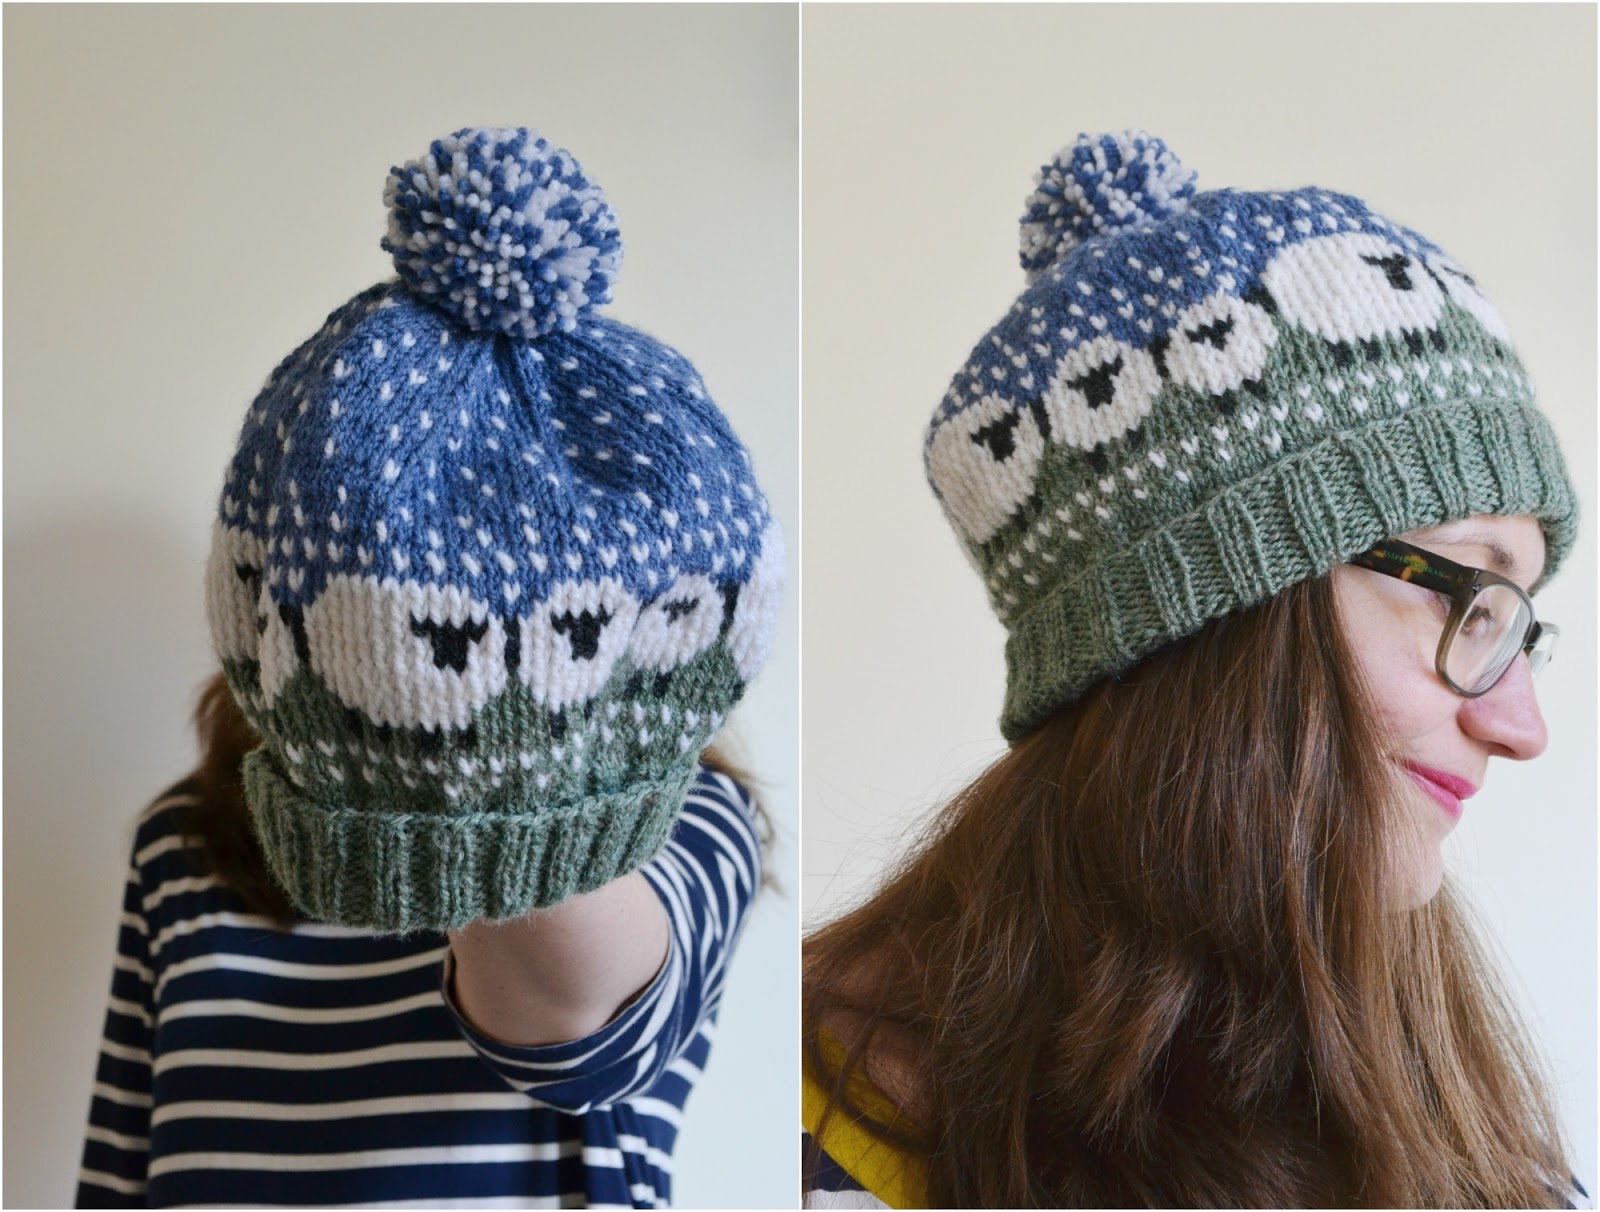 Woolen Hat Knitting Pattern : Elise and Life - A Scottish Fashion and Lifestyle Blog: April 2015